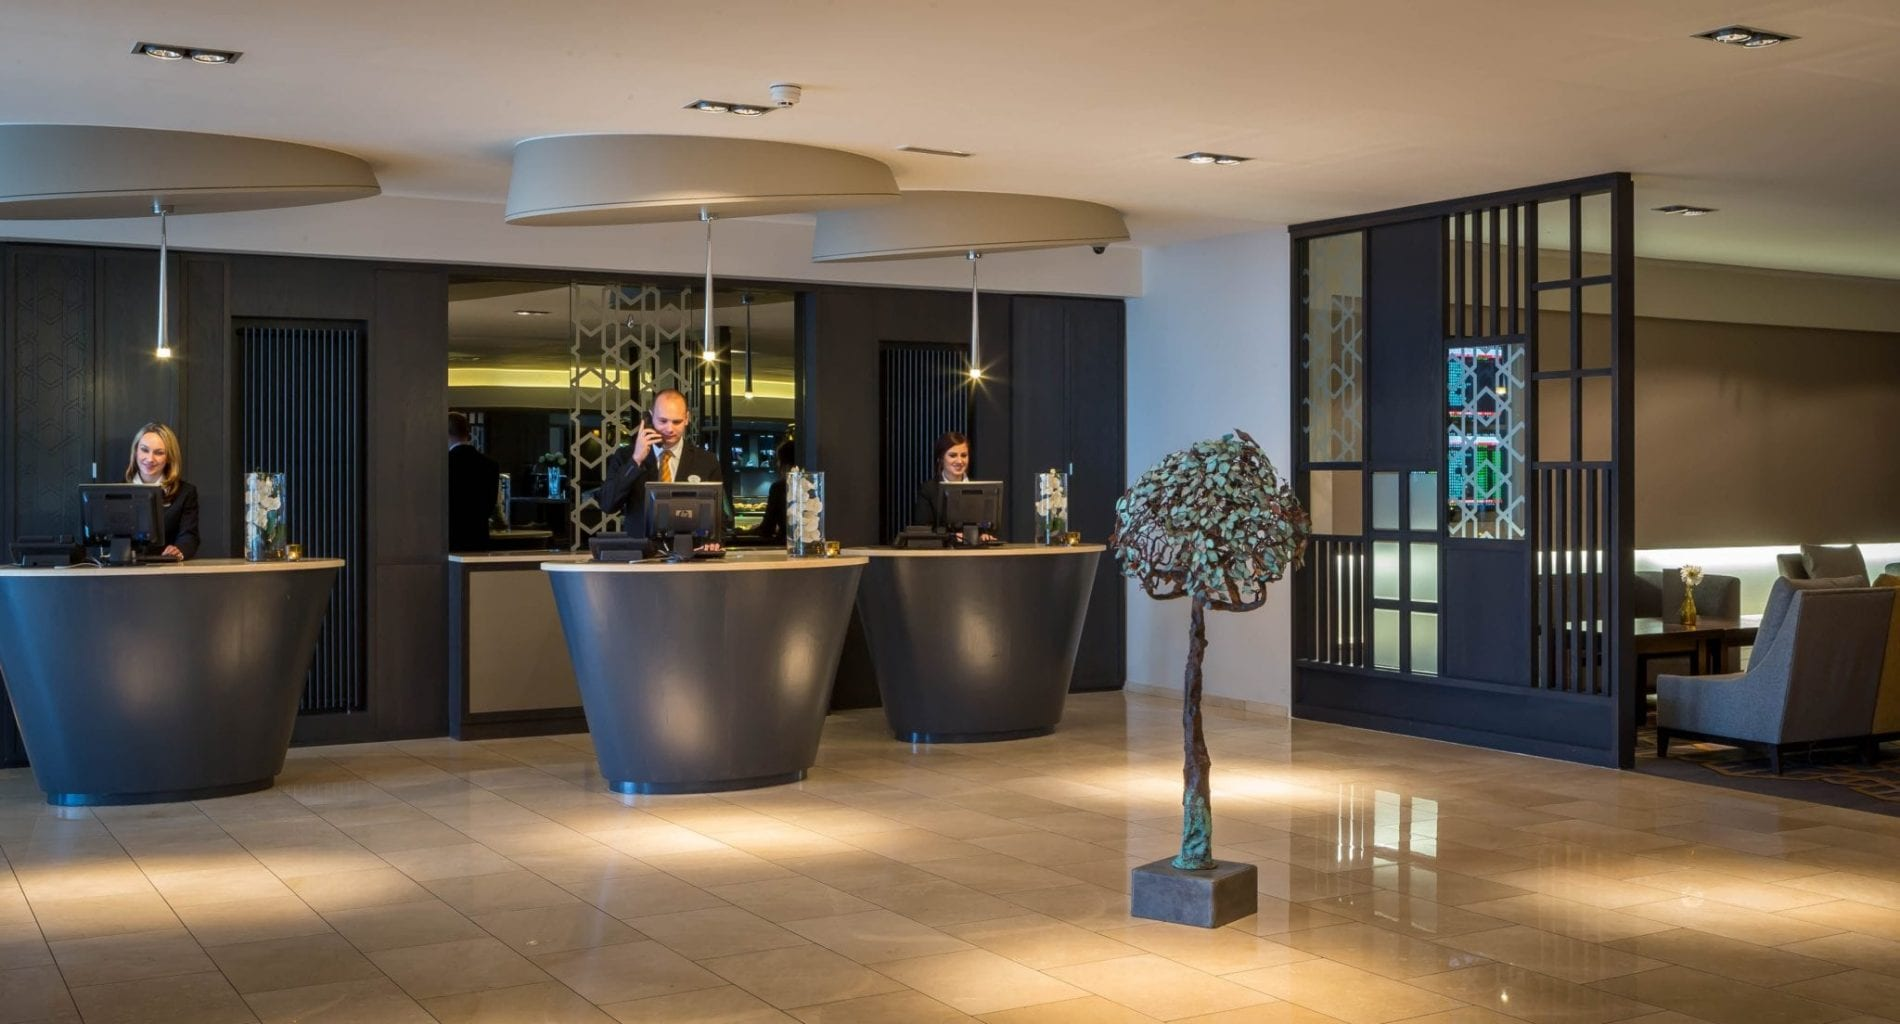 Maldron Hotel Dublin Airport friendly reception team look forward to welcoming you